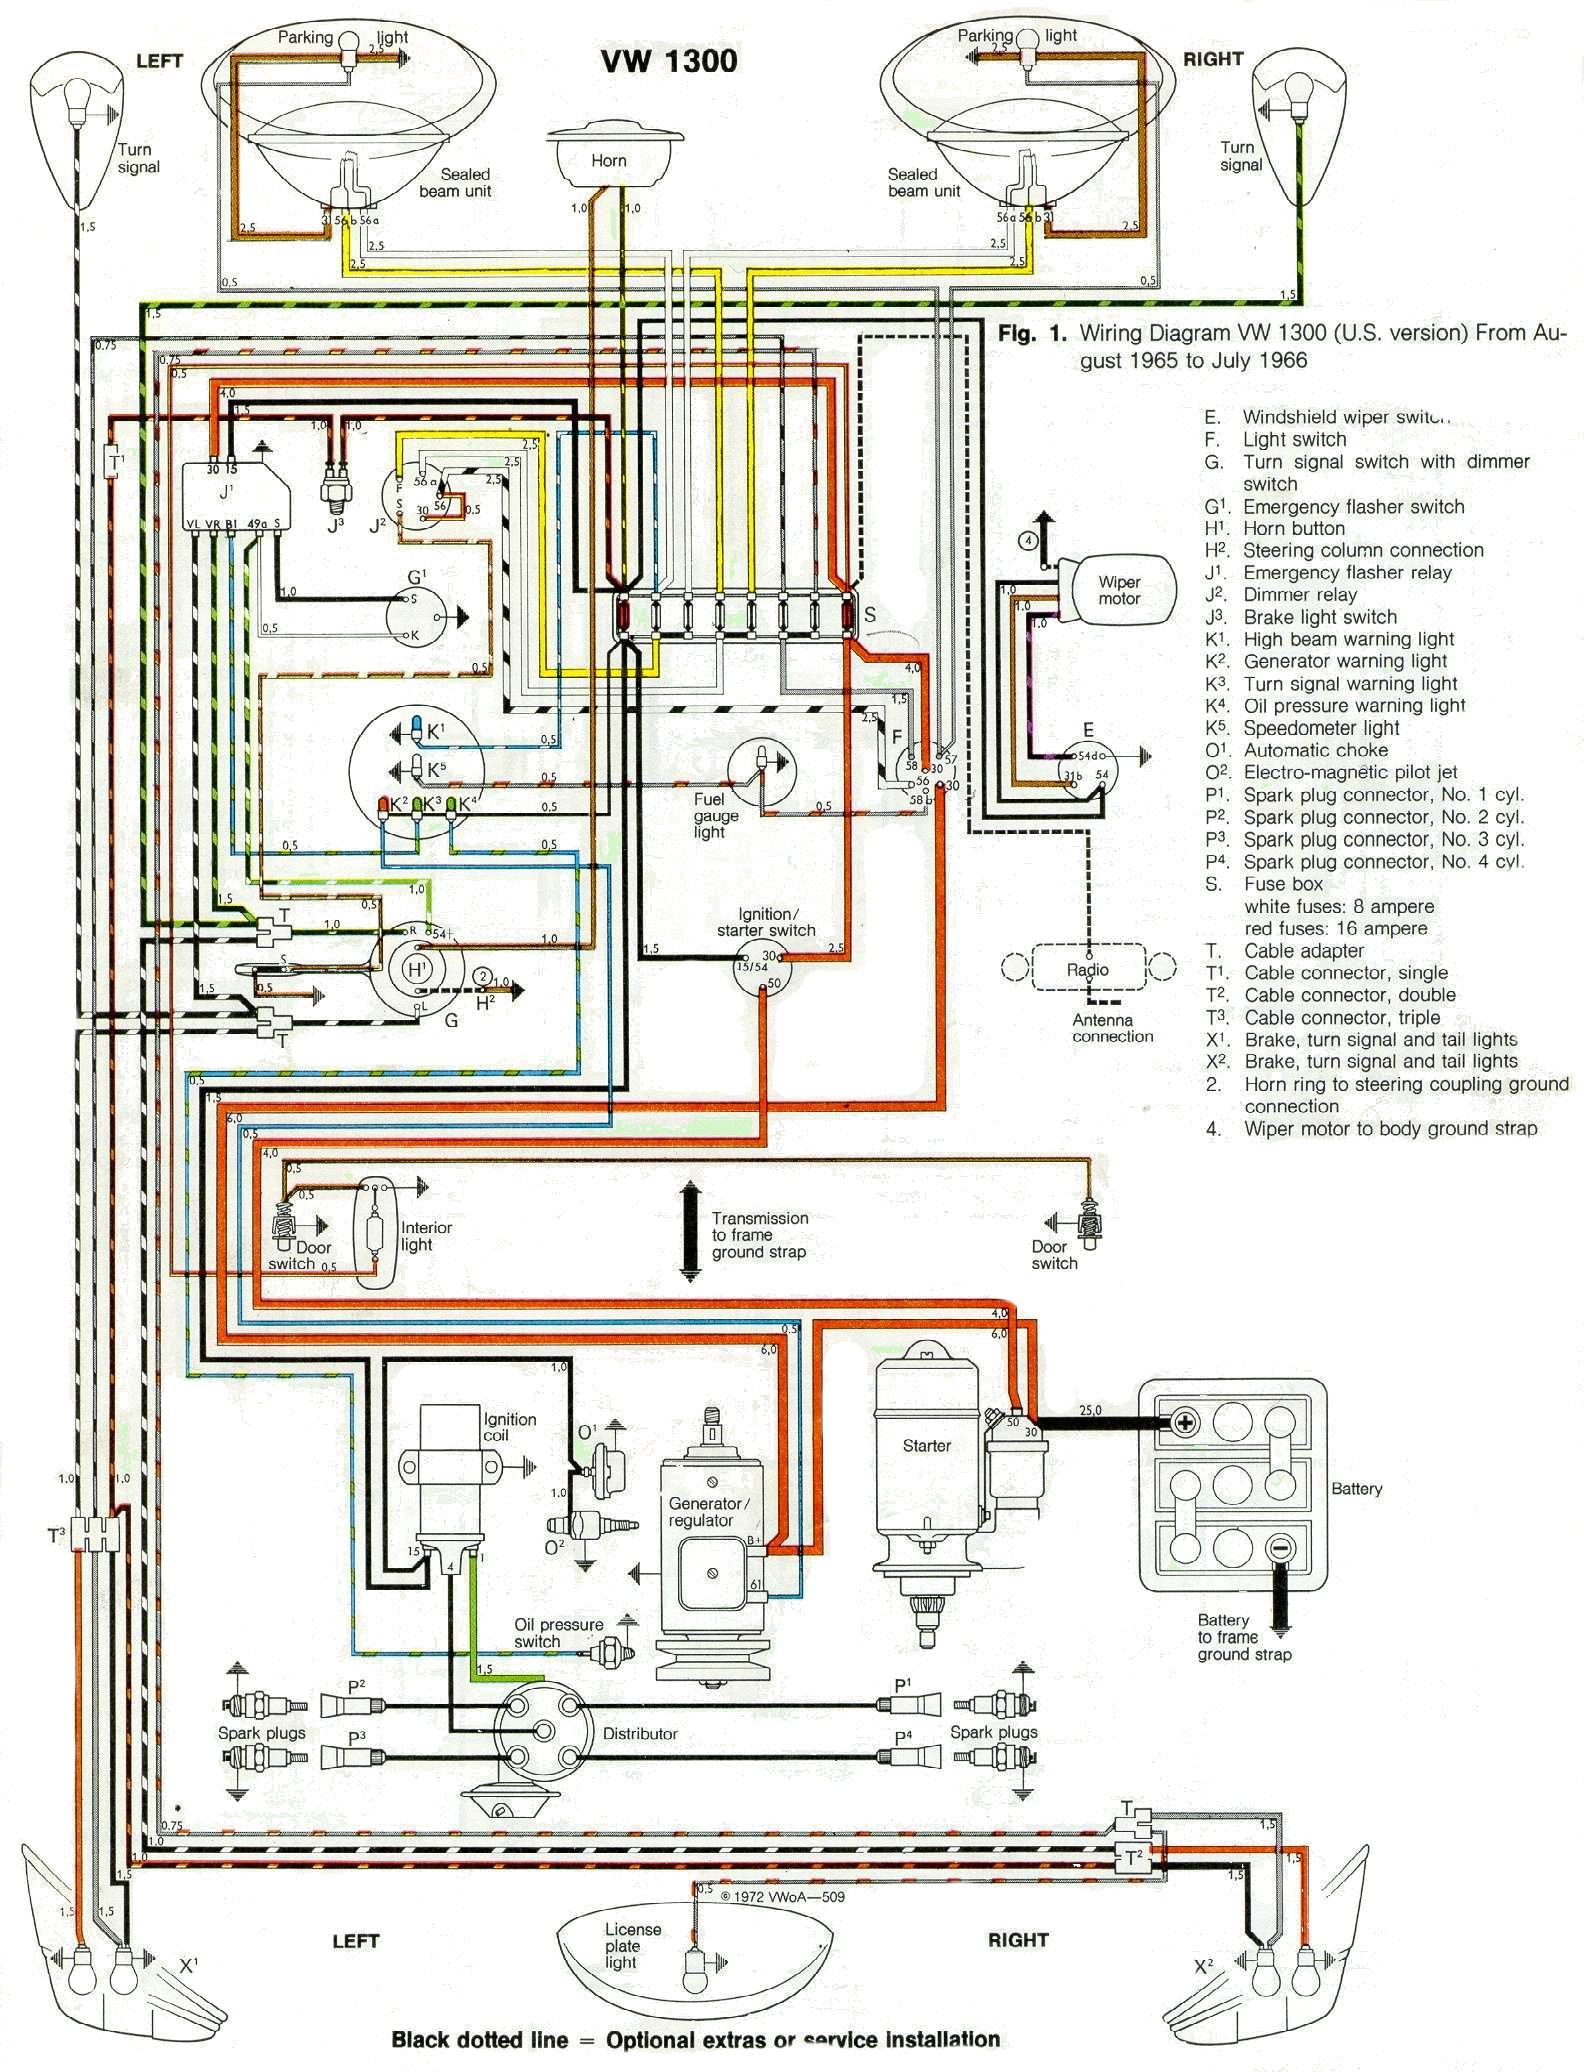 hight resolution of 1966 wiring diagram volkswagen amp meter wiring diagram volkswagen wiring diagram